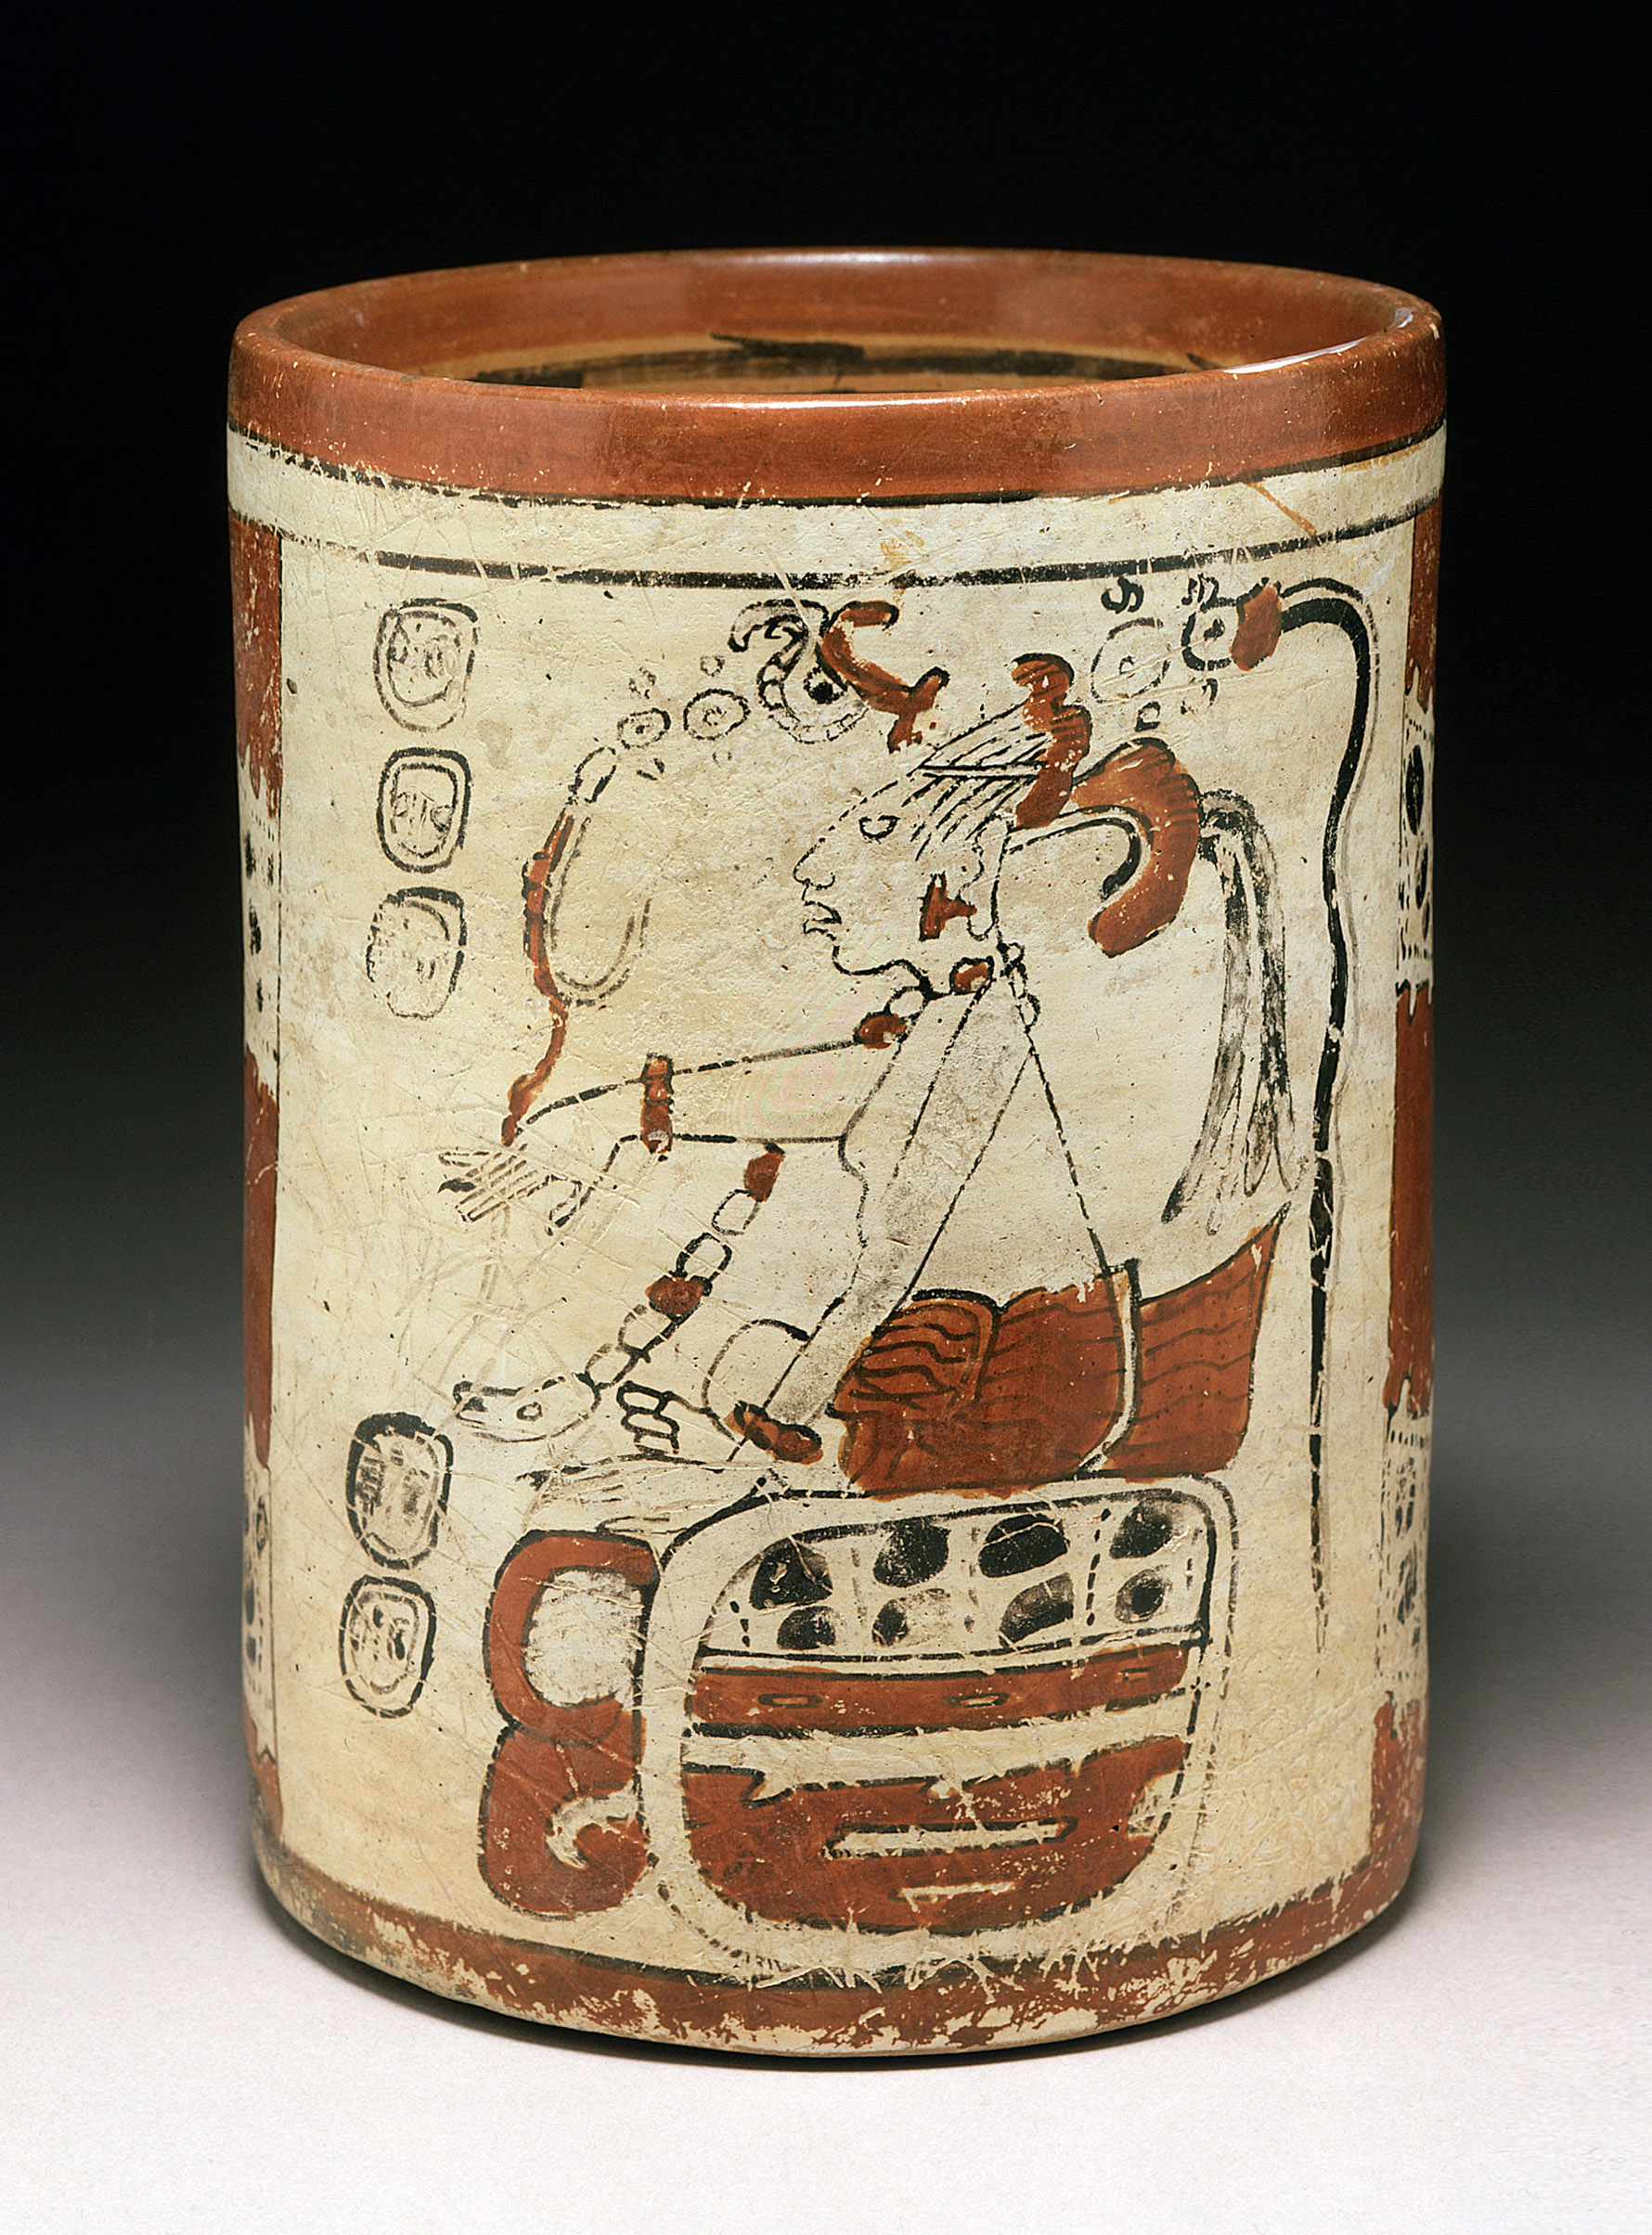 Maya polychrome ceramic